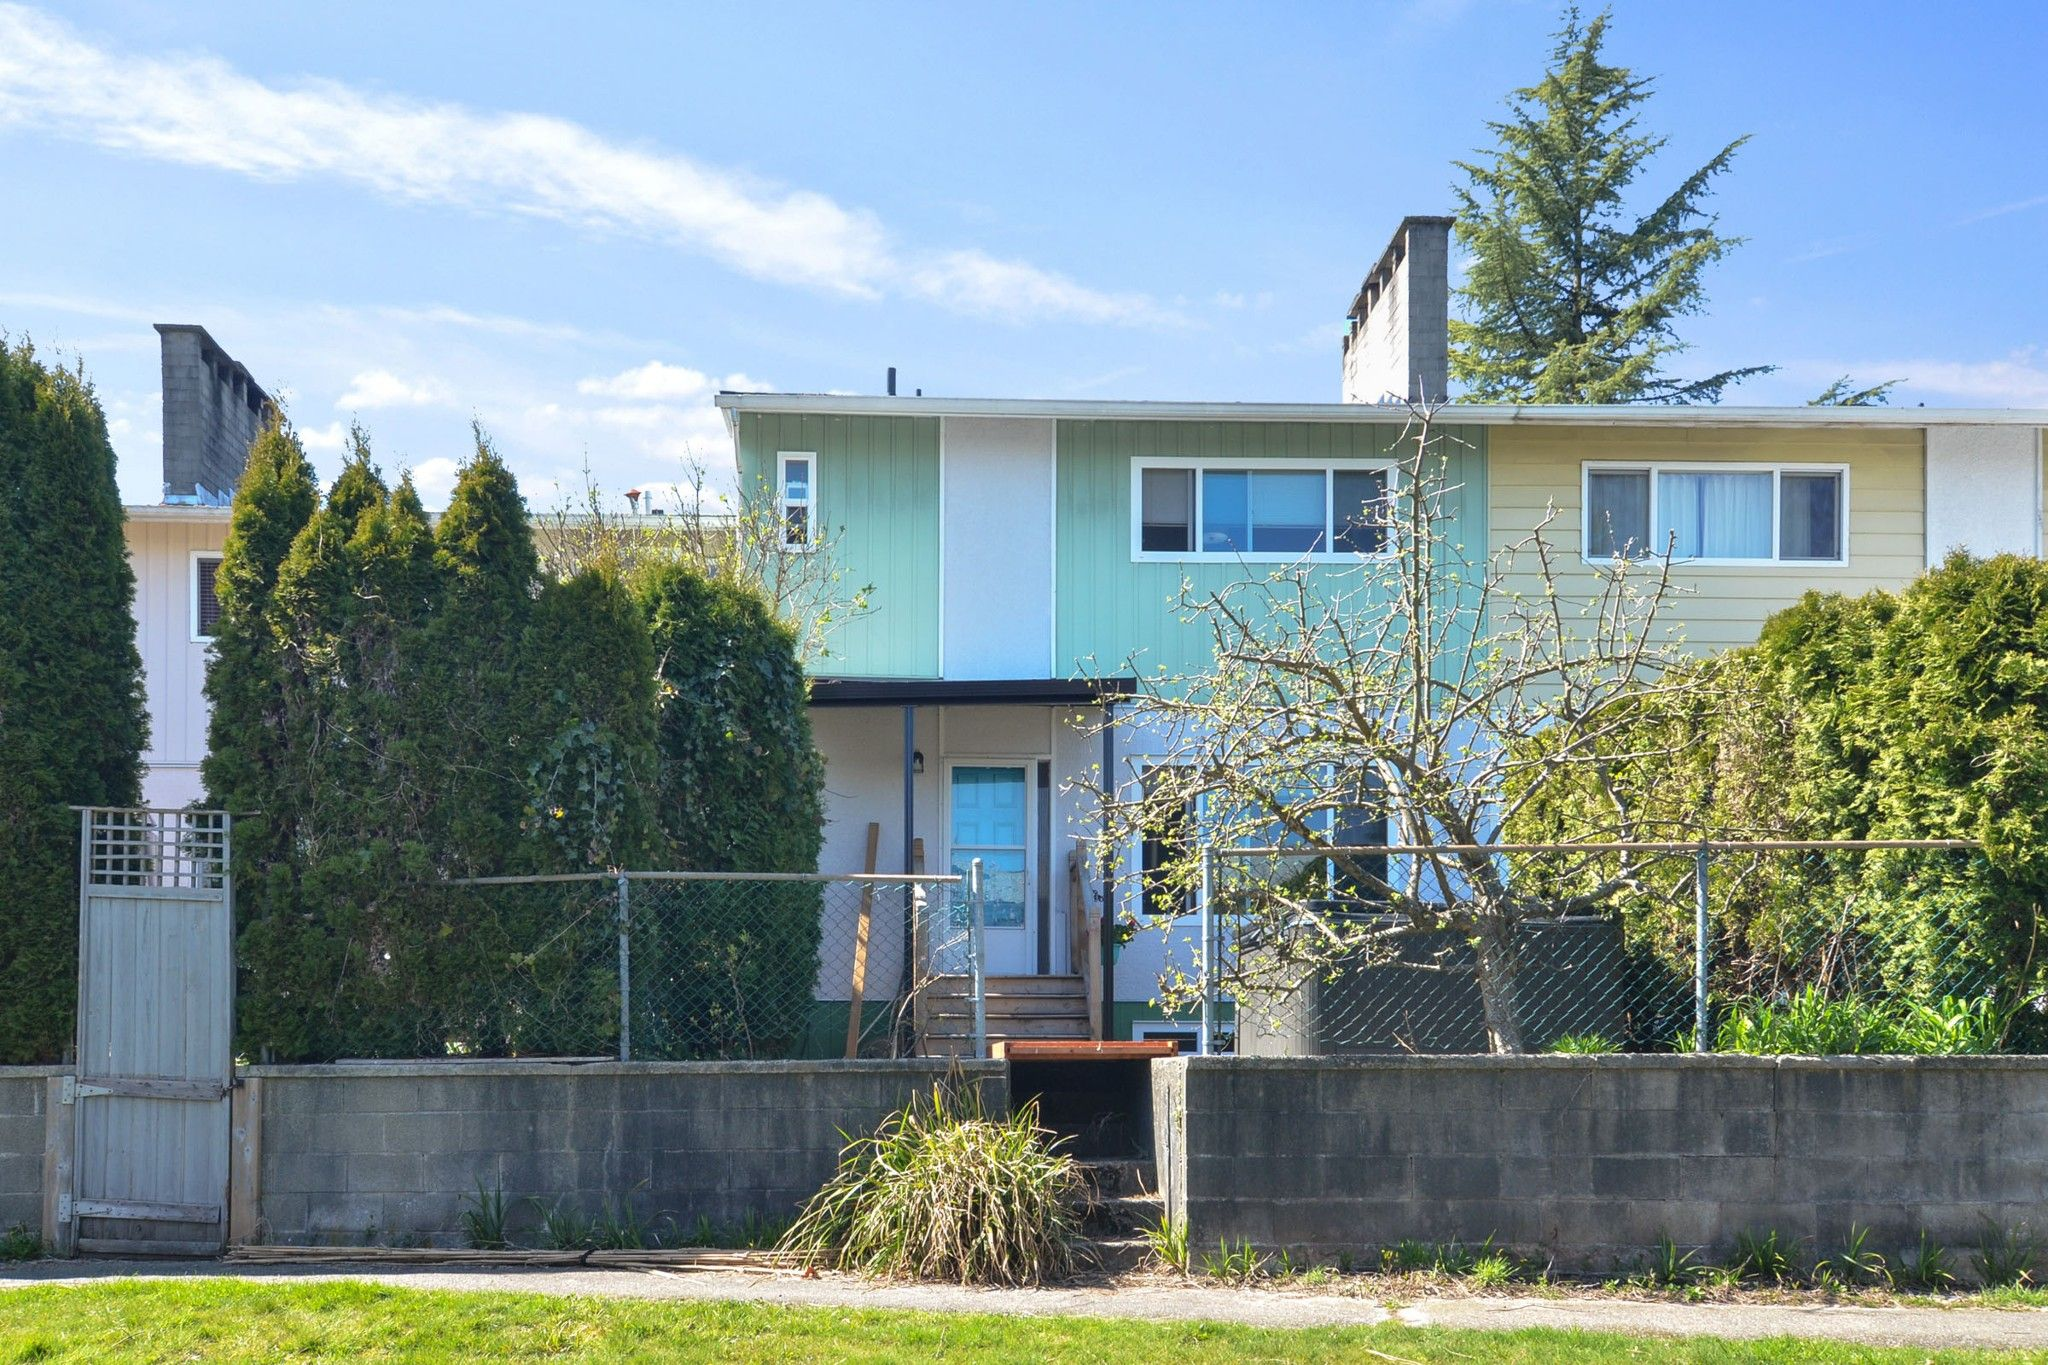 """Main Photo: 1314 UNA Way in Port Coquitlam: Mary Hill Condo for sale in """"MARY HILL GARDENS"""" : MLS®# R2566329"""